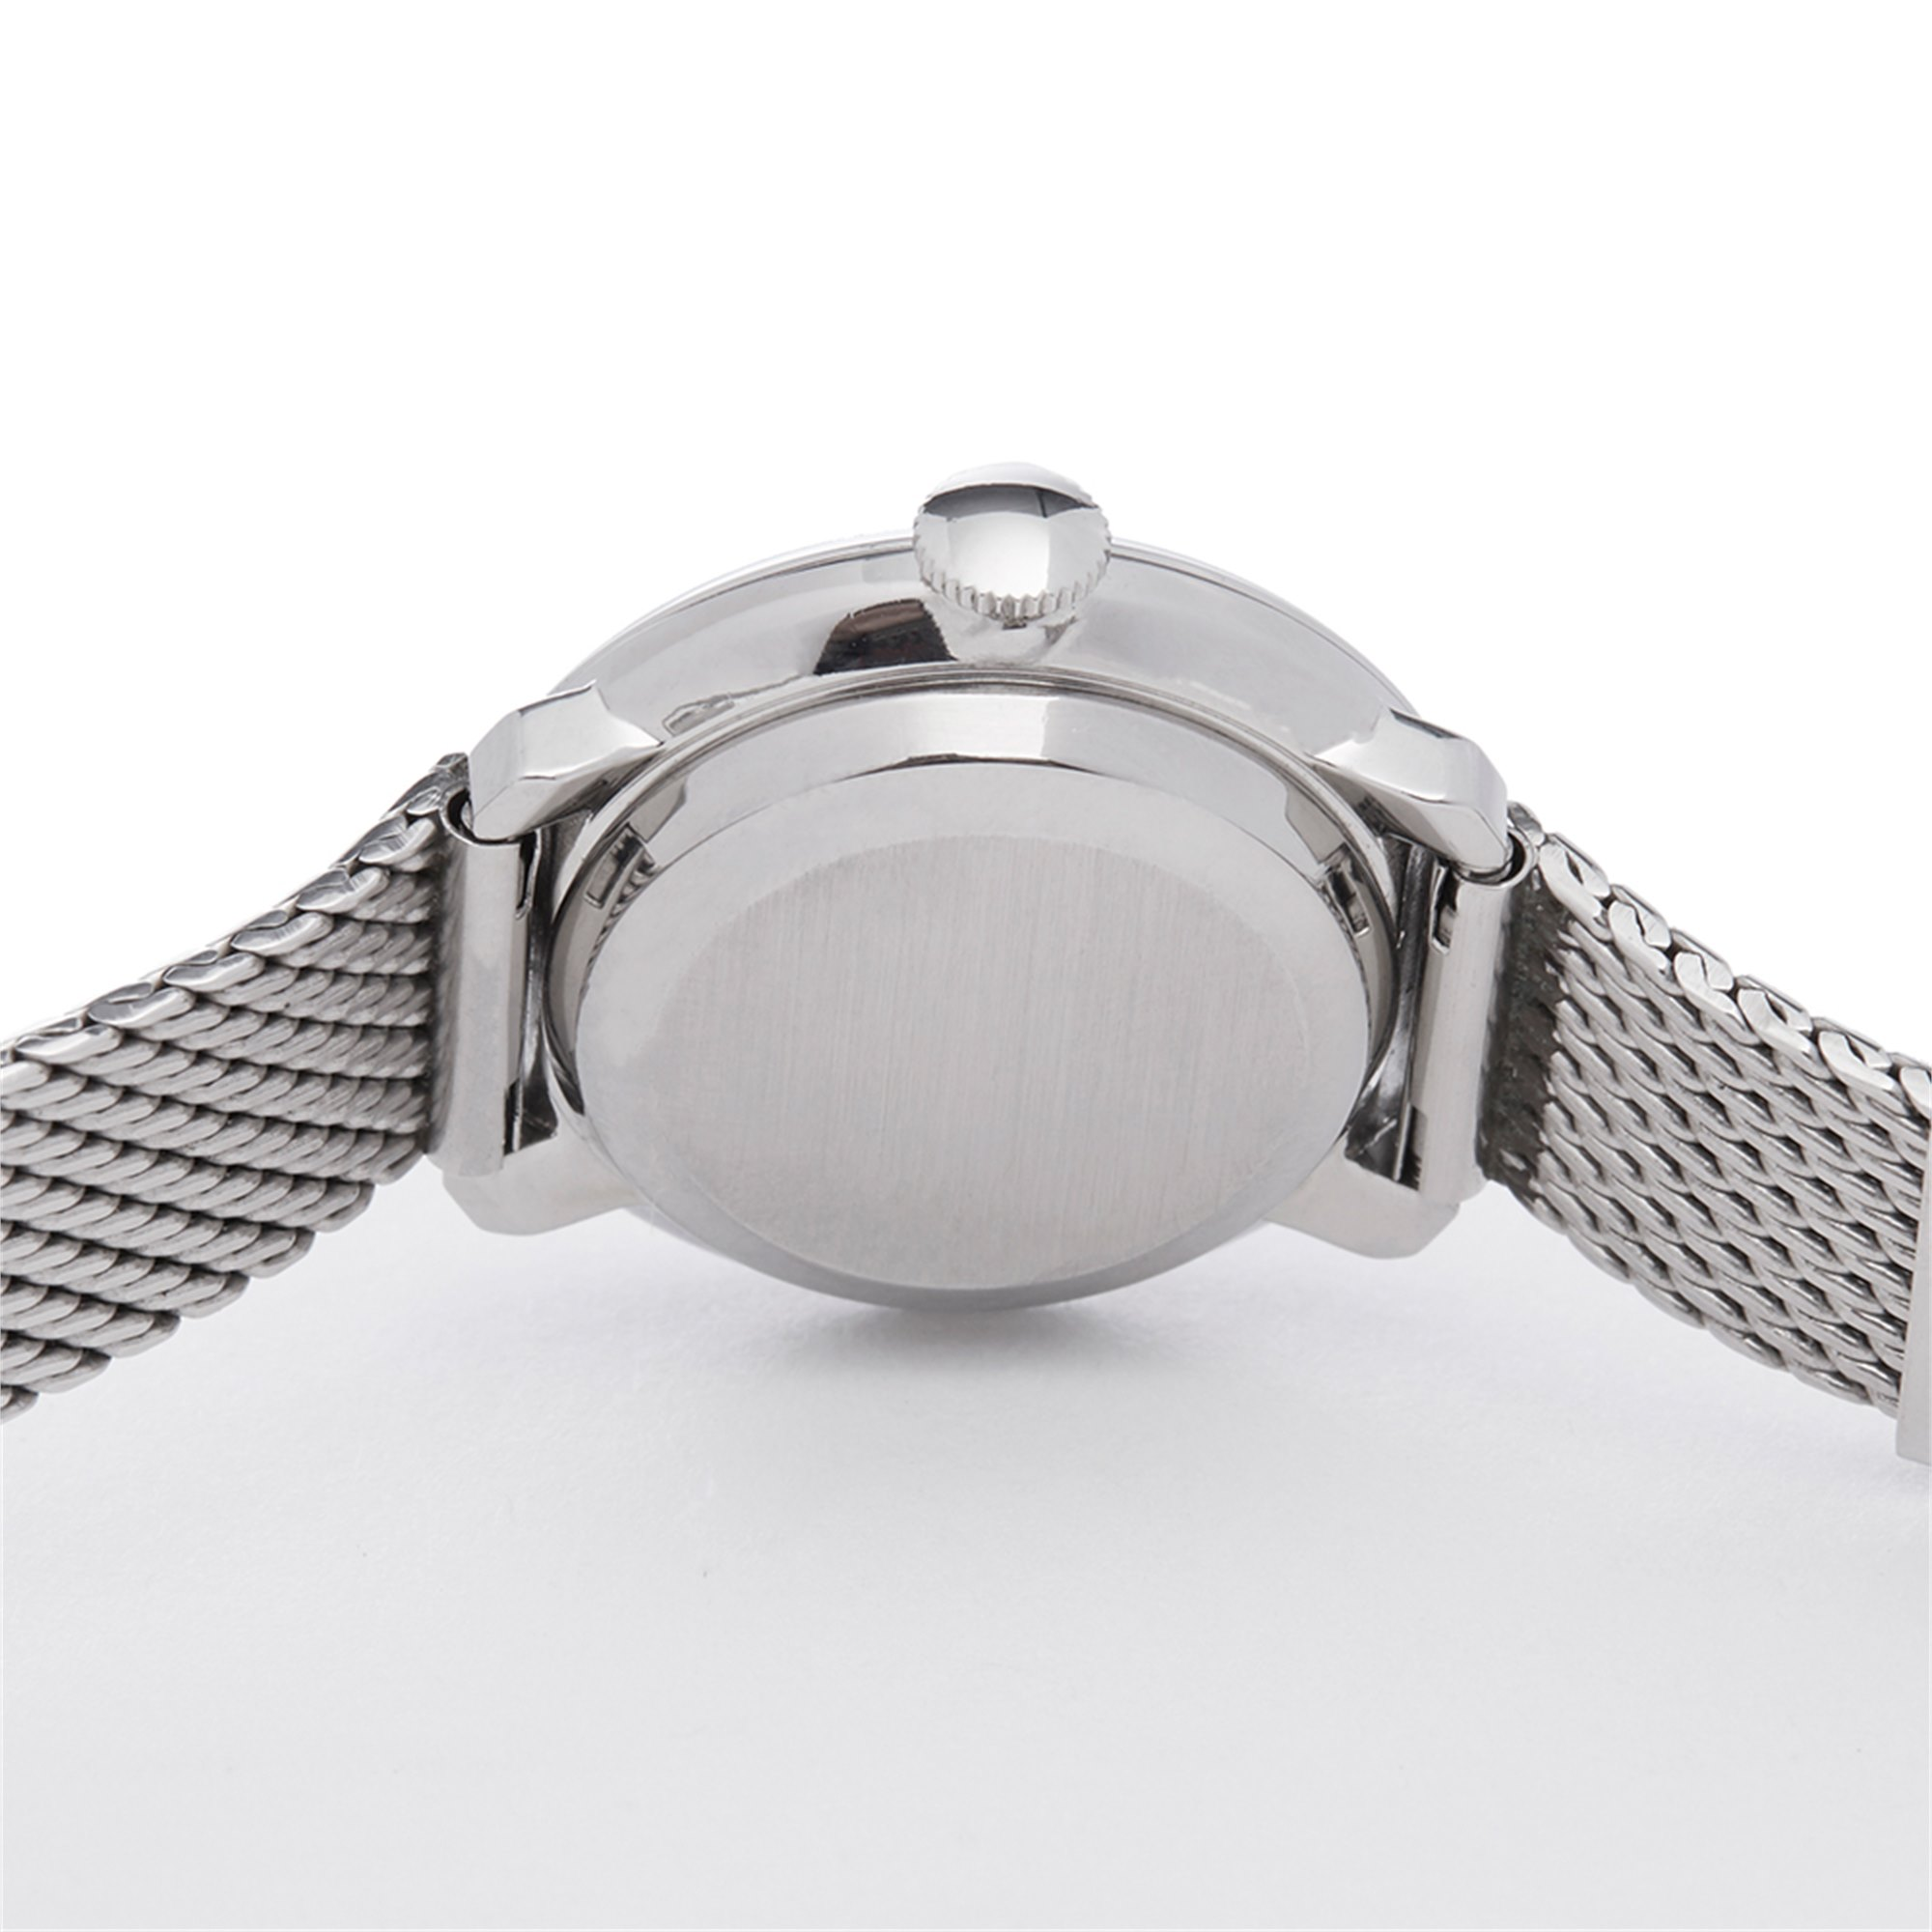 IWC Vintage Stainless Steel C.44